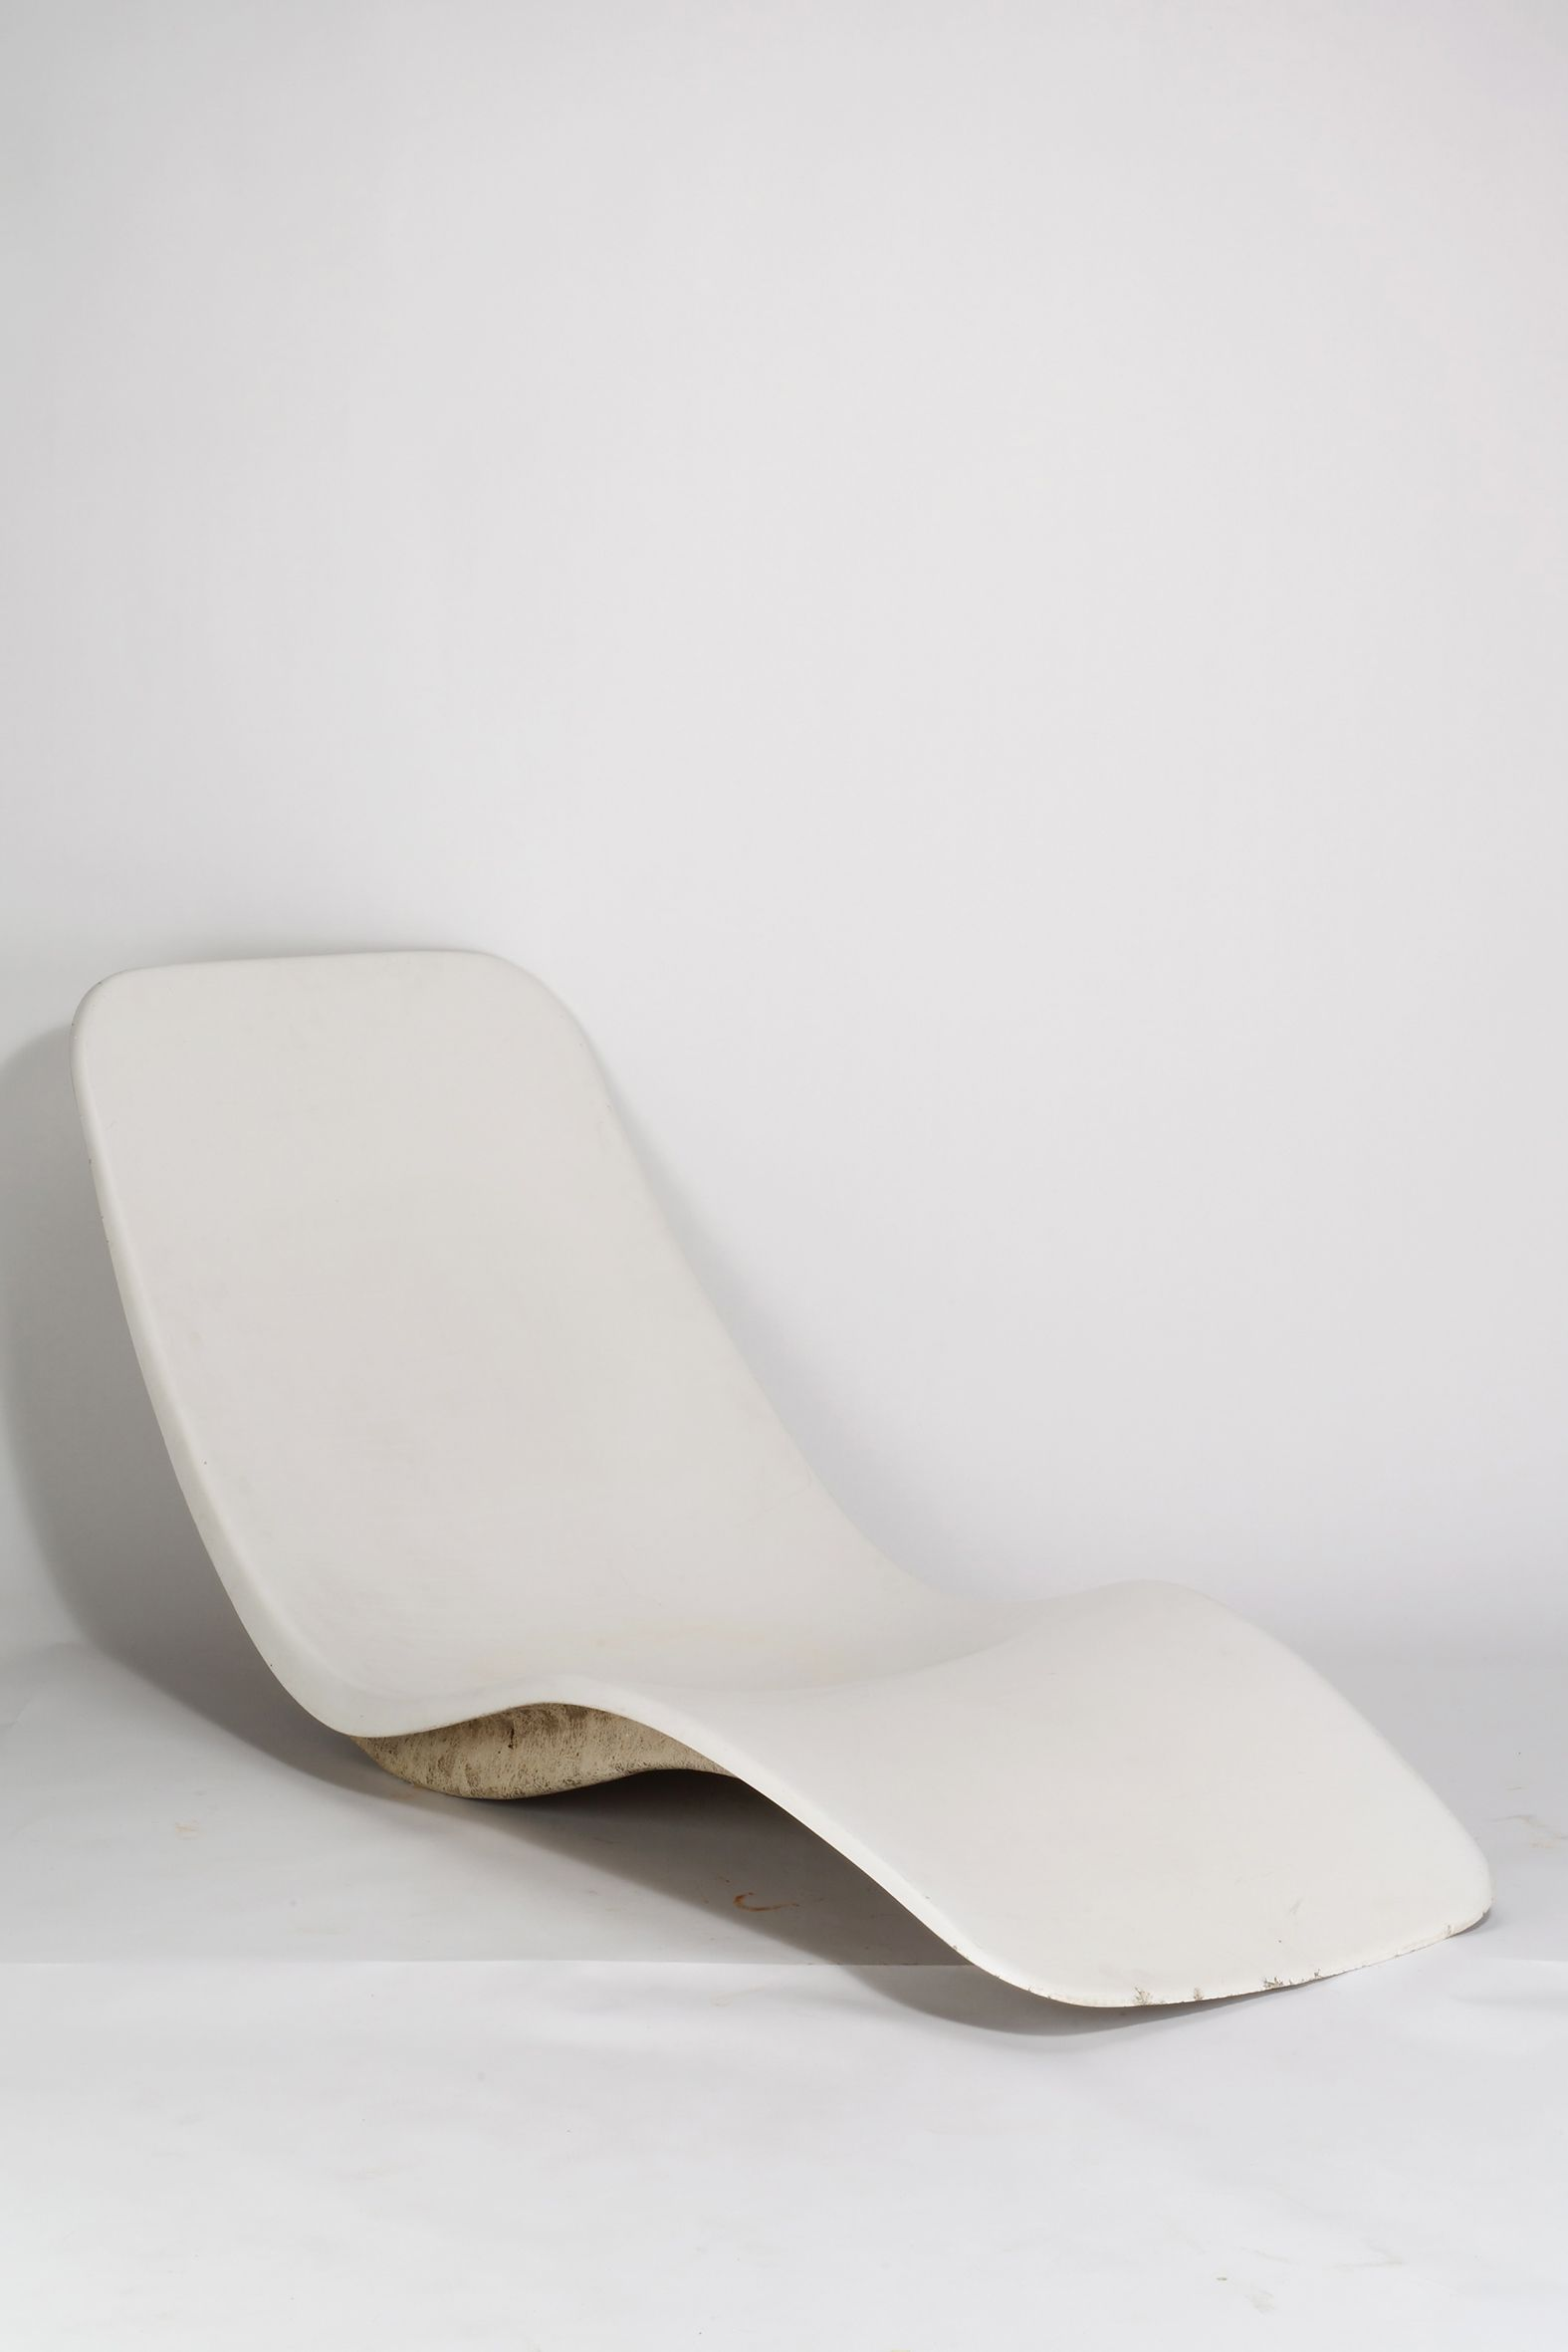 Charles Zublena Chaise Lounge 1970 Furniture Muebles  # Muebles Zona Franca